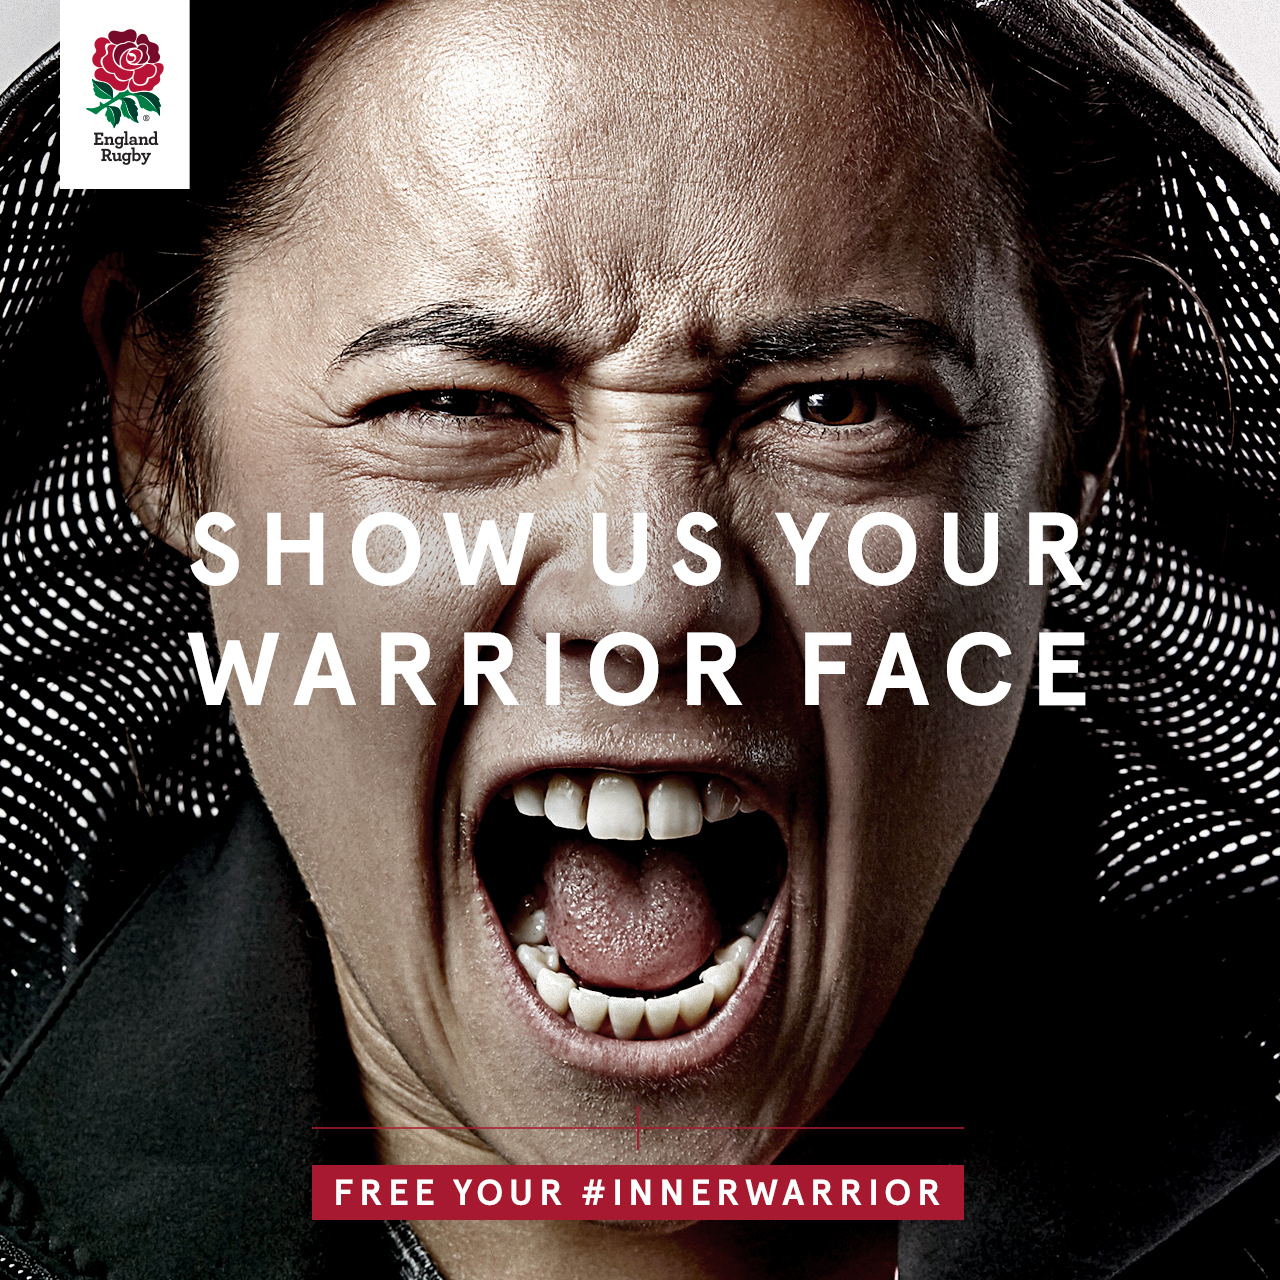 170727 RFU Inner Warrior Face Facebook 2.jpg